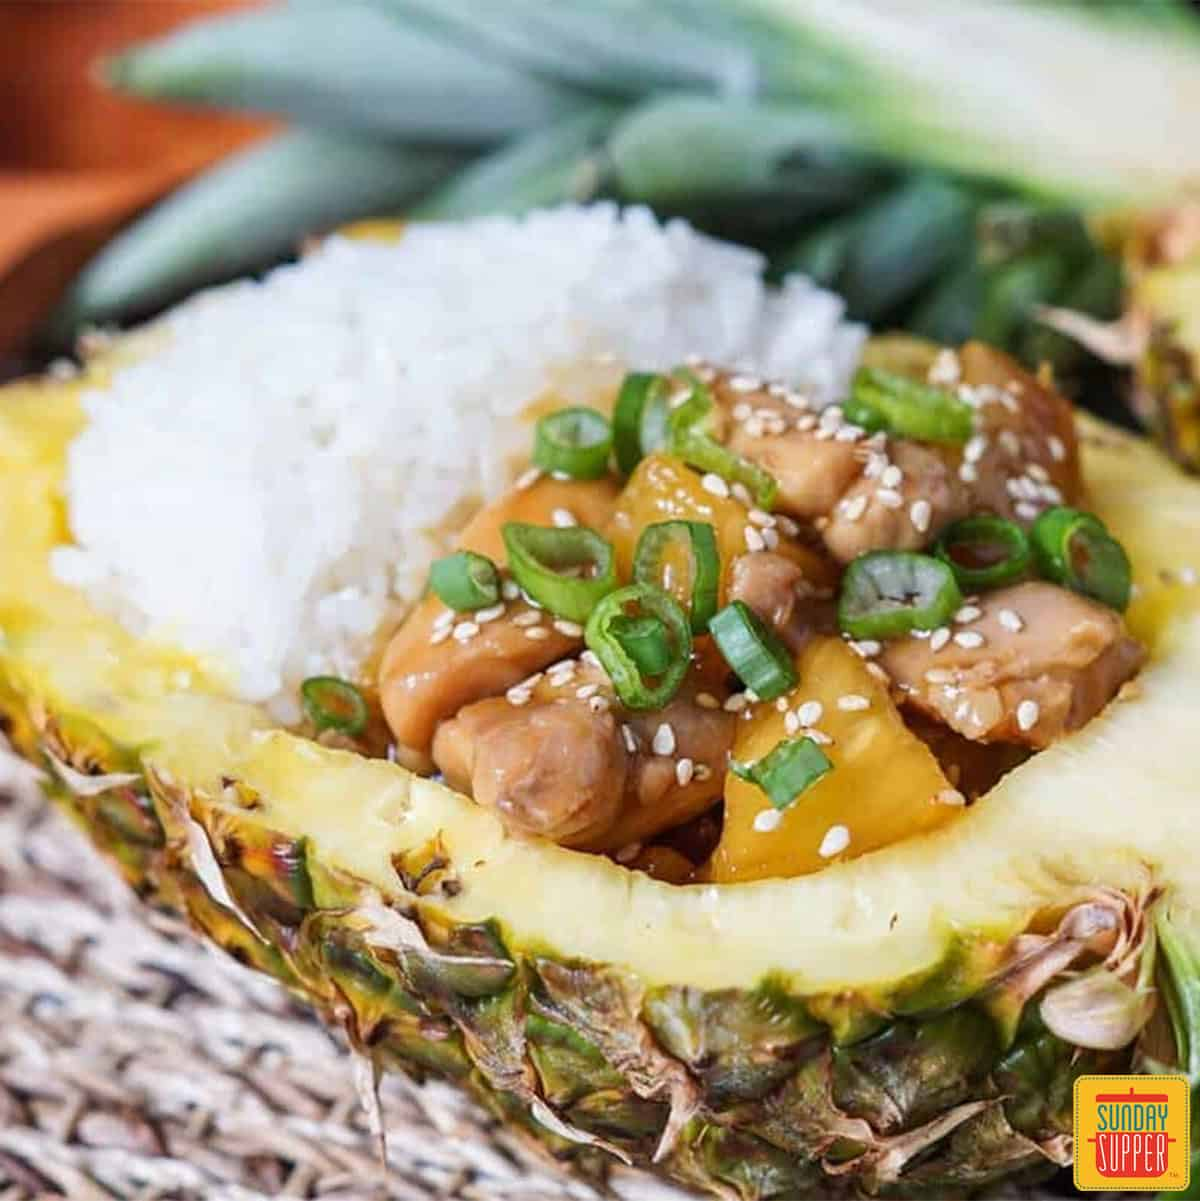 teriyaki chicken in a pineapple bowl with rice